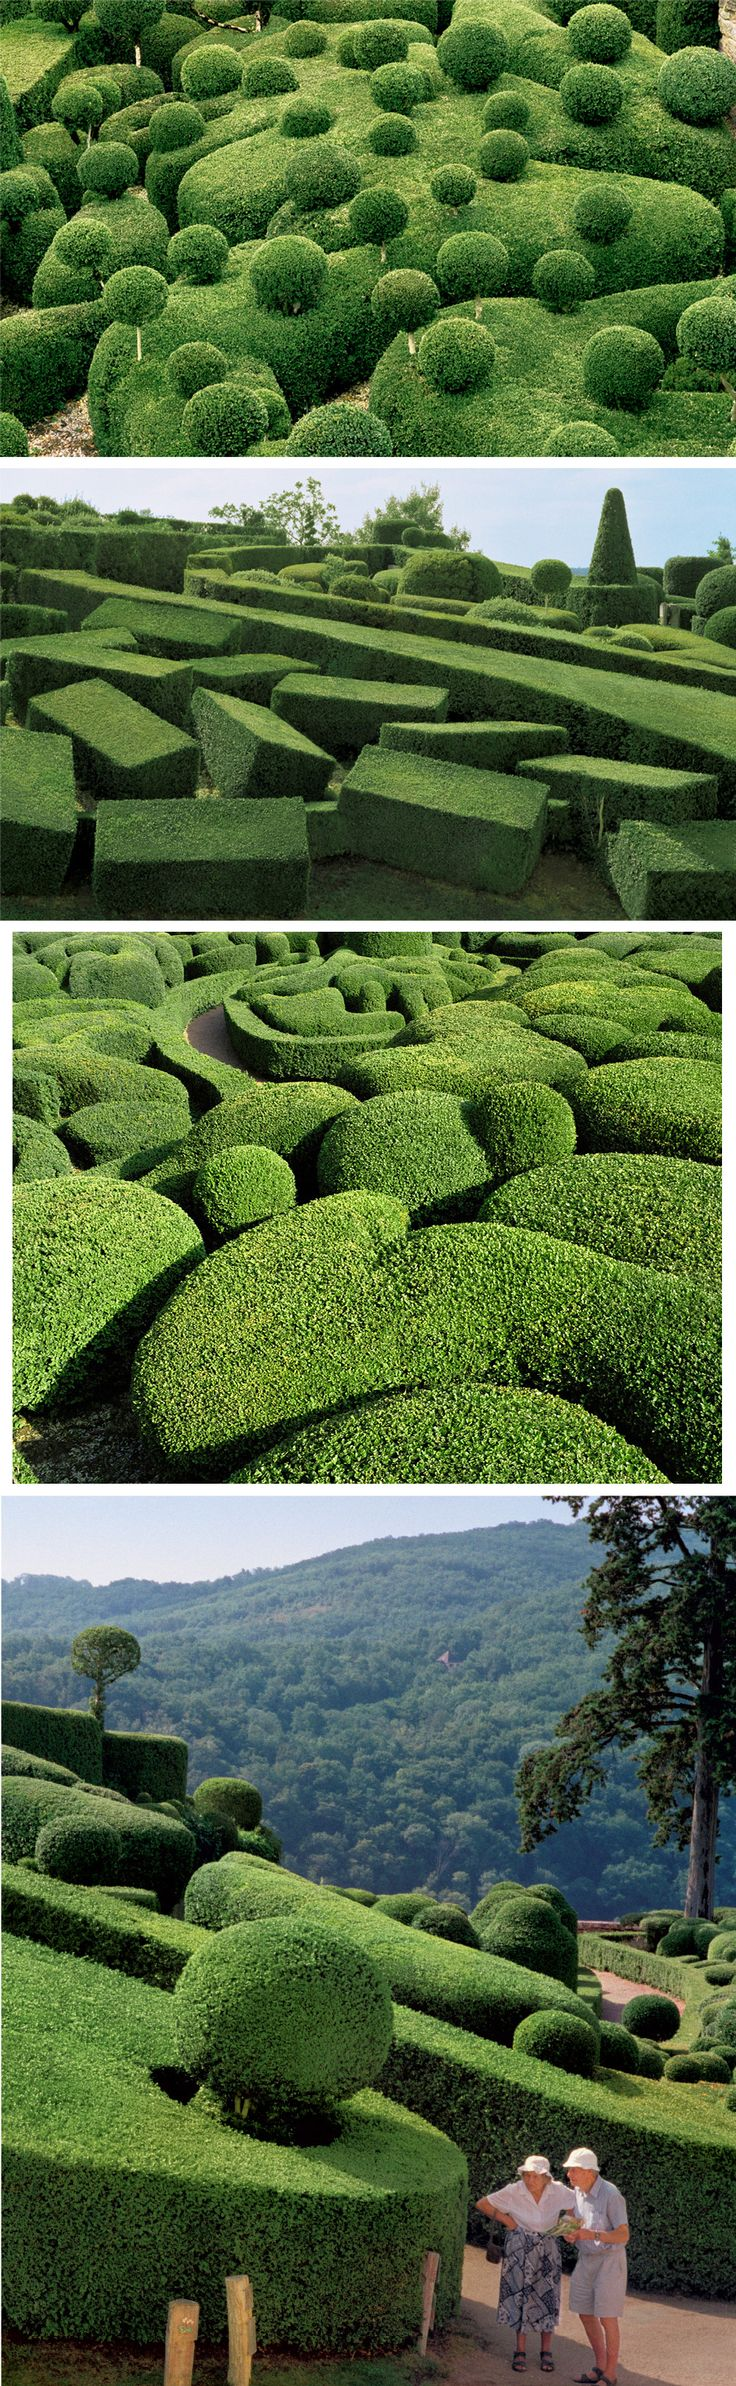 Surreal Views of the Marqueyssac Topiary Gardens Photographed by Philippe Jarrigeon